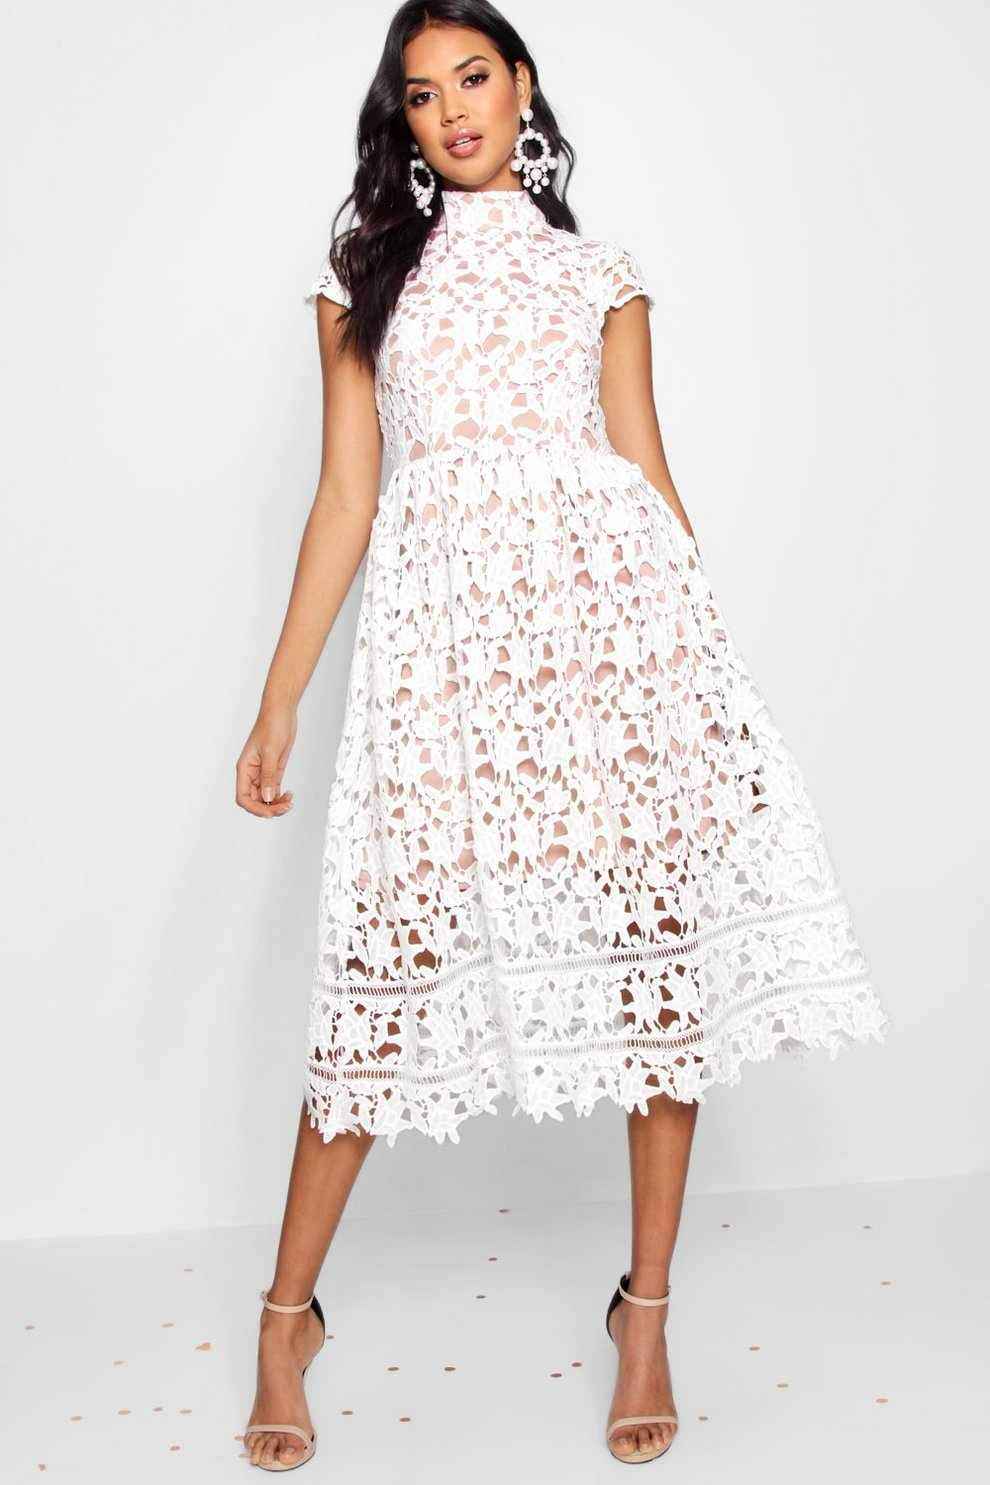 Discount Pay With Visa Boohoo Boutique Lace High Neck Skater Dress Cheap Sale Affordable Discount Largest Supplier Outlet Sneakernews 2018 Newest Cheap Online f6LDxxCSpV